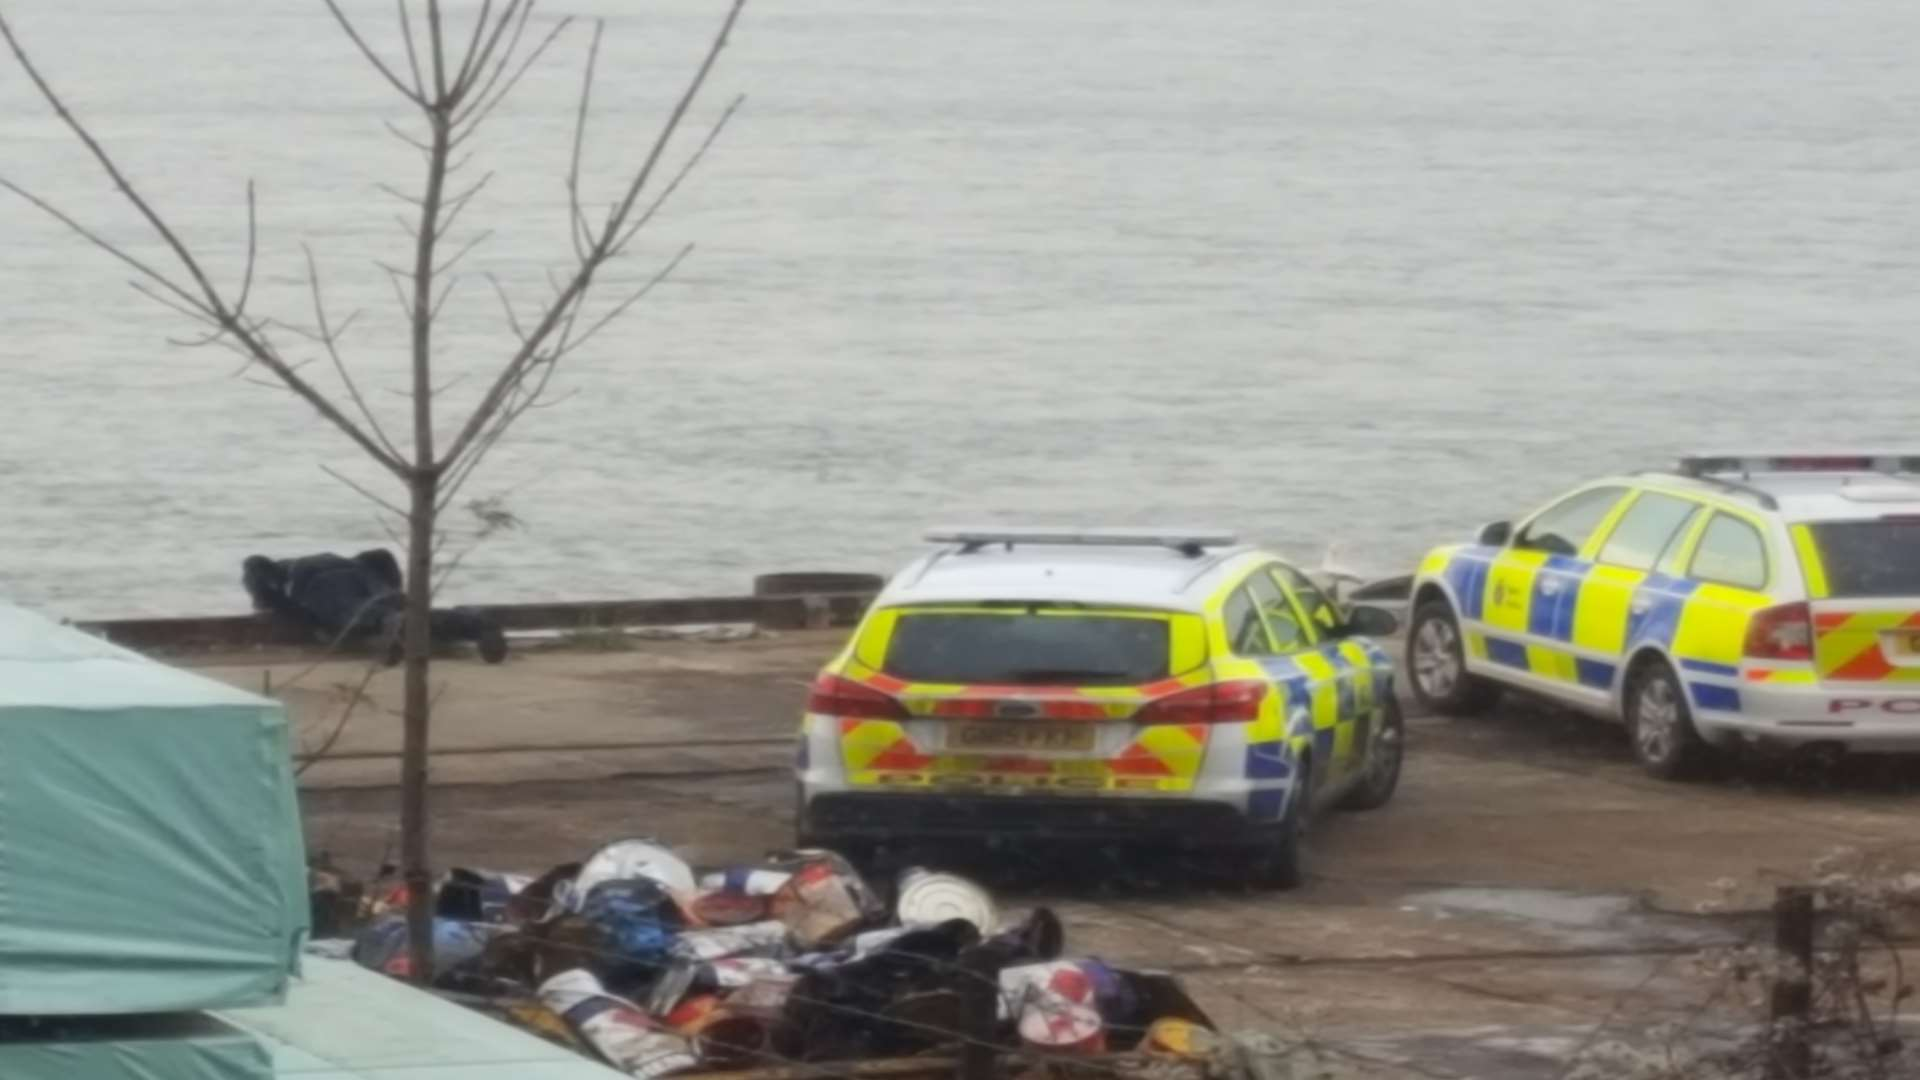 There is a police presence near the Acorn Shipyard. Picture: Peter Fowler